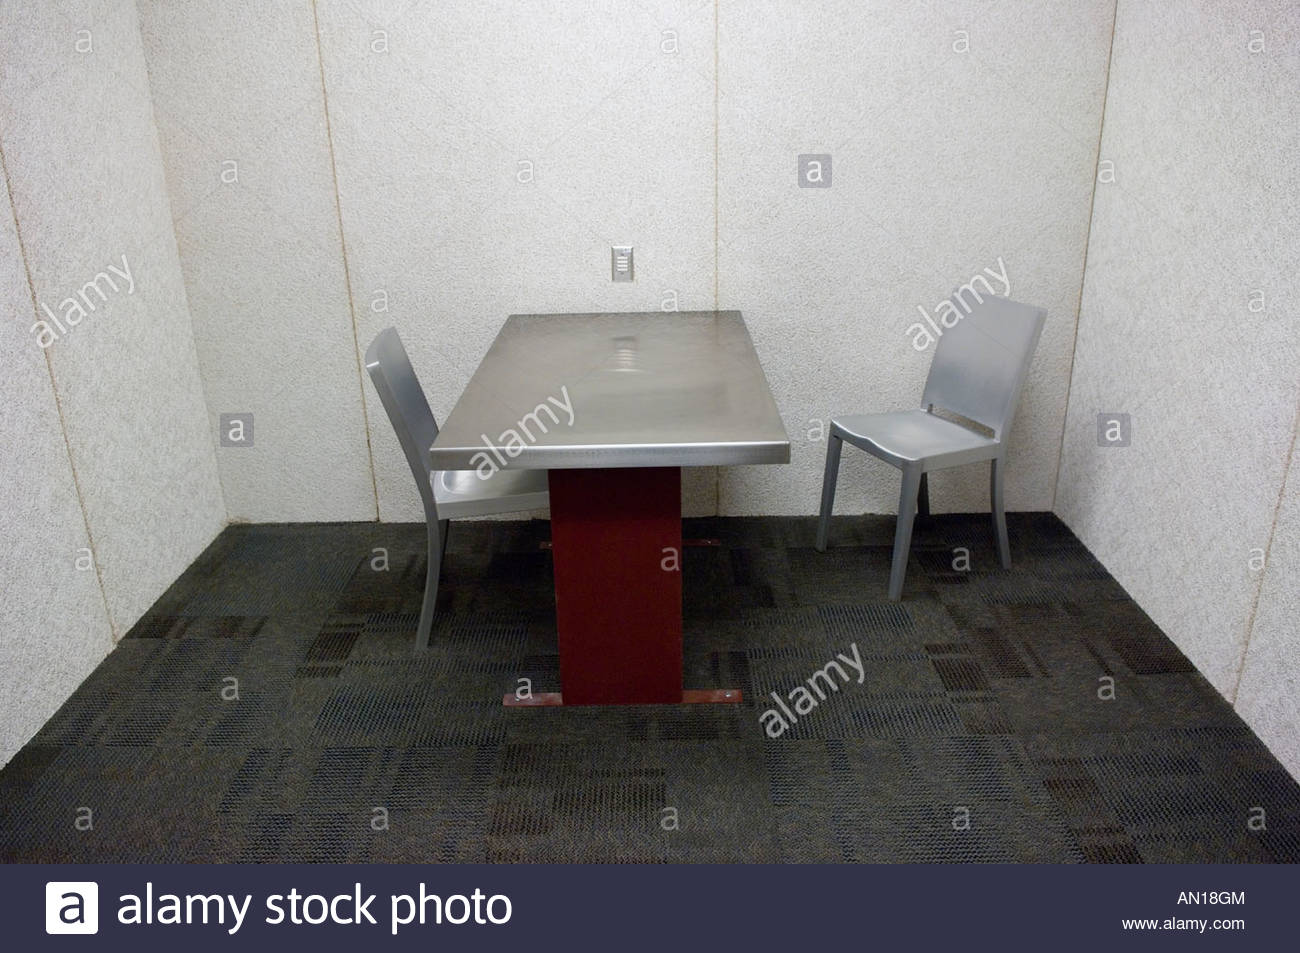 Police Interview Room Furniture